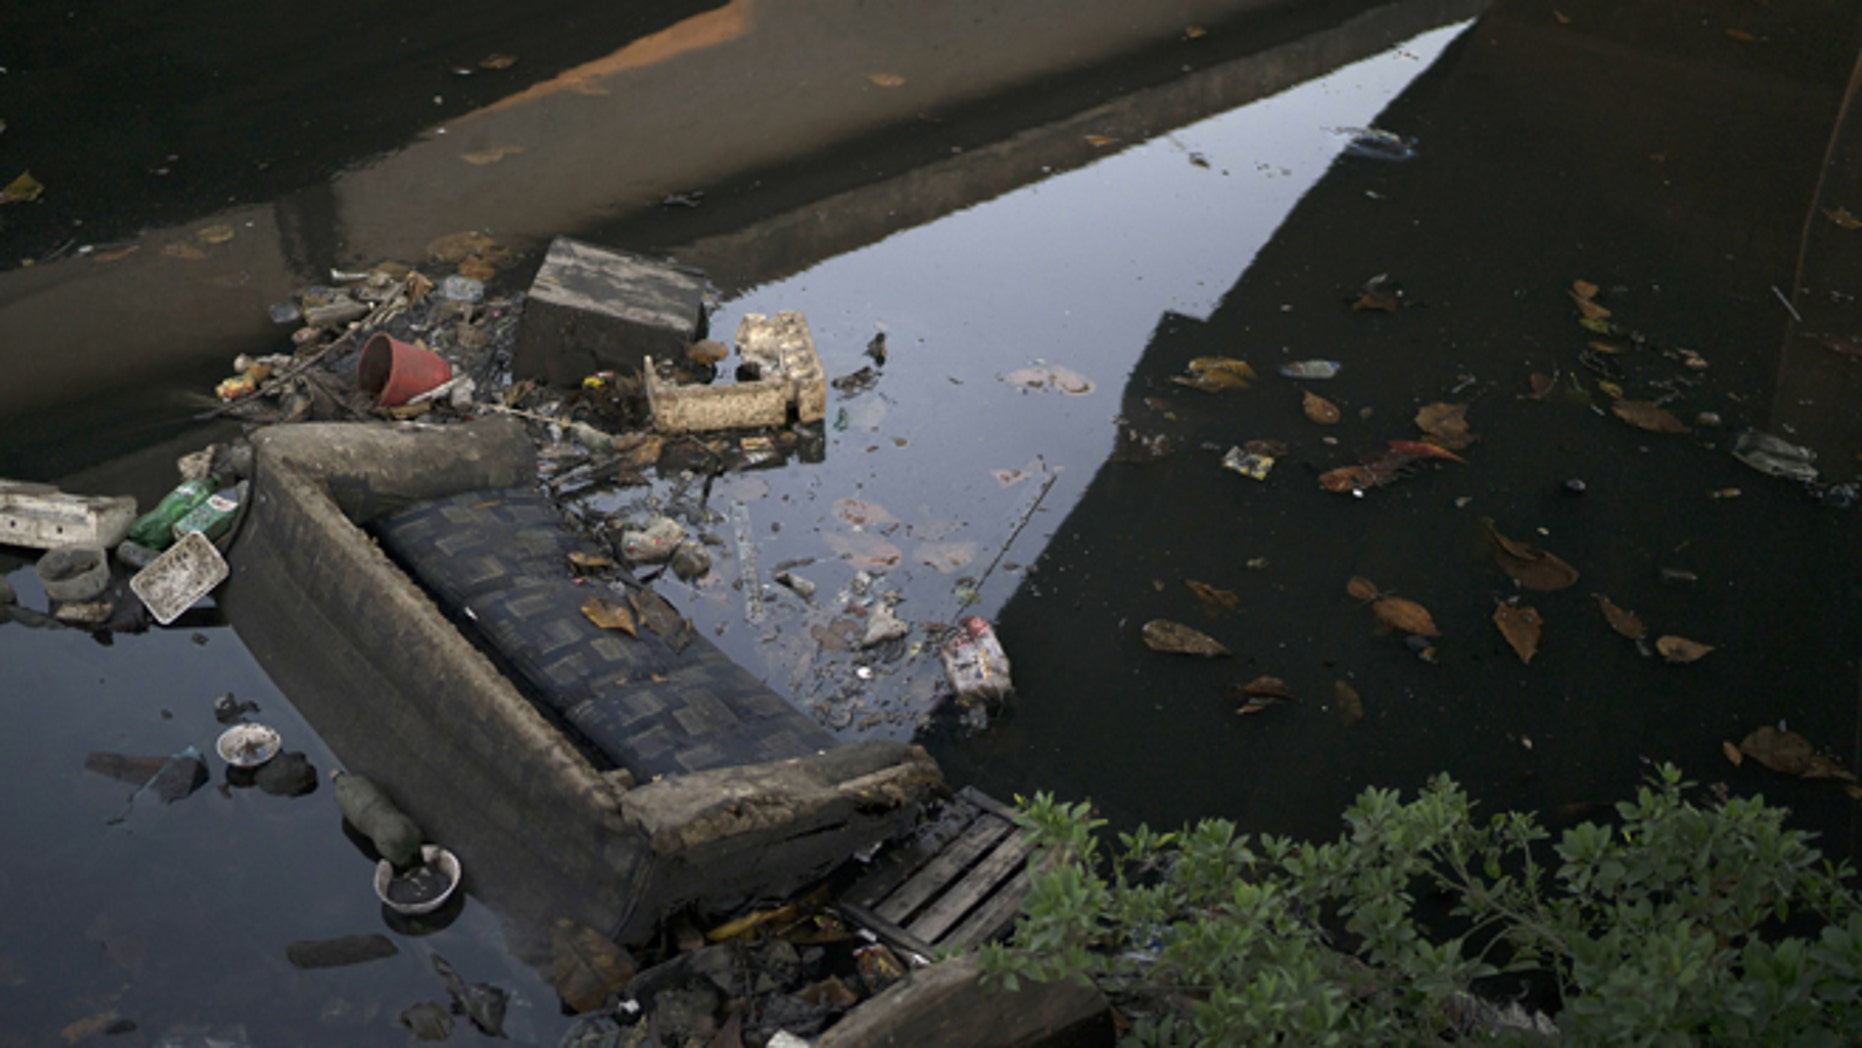 A discarded sofa lies half submerged in polluted water in a canal at the Mare slum complex  in Rio de Janeiro, Brazil, Friday, July 31, 2015. In Rio, much of the waste runs through open-air ditches to fetid streams and rivers that feed the Olympic water sites and blight the city's picture postcard beaches. (AP Photo/Leo Correa)